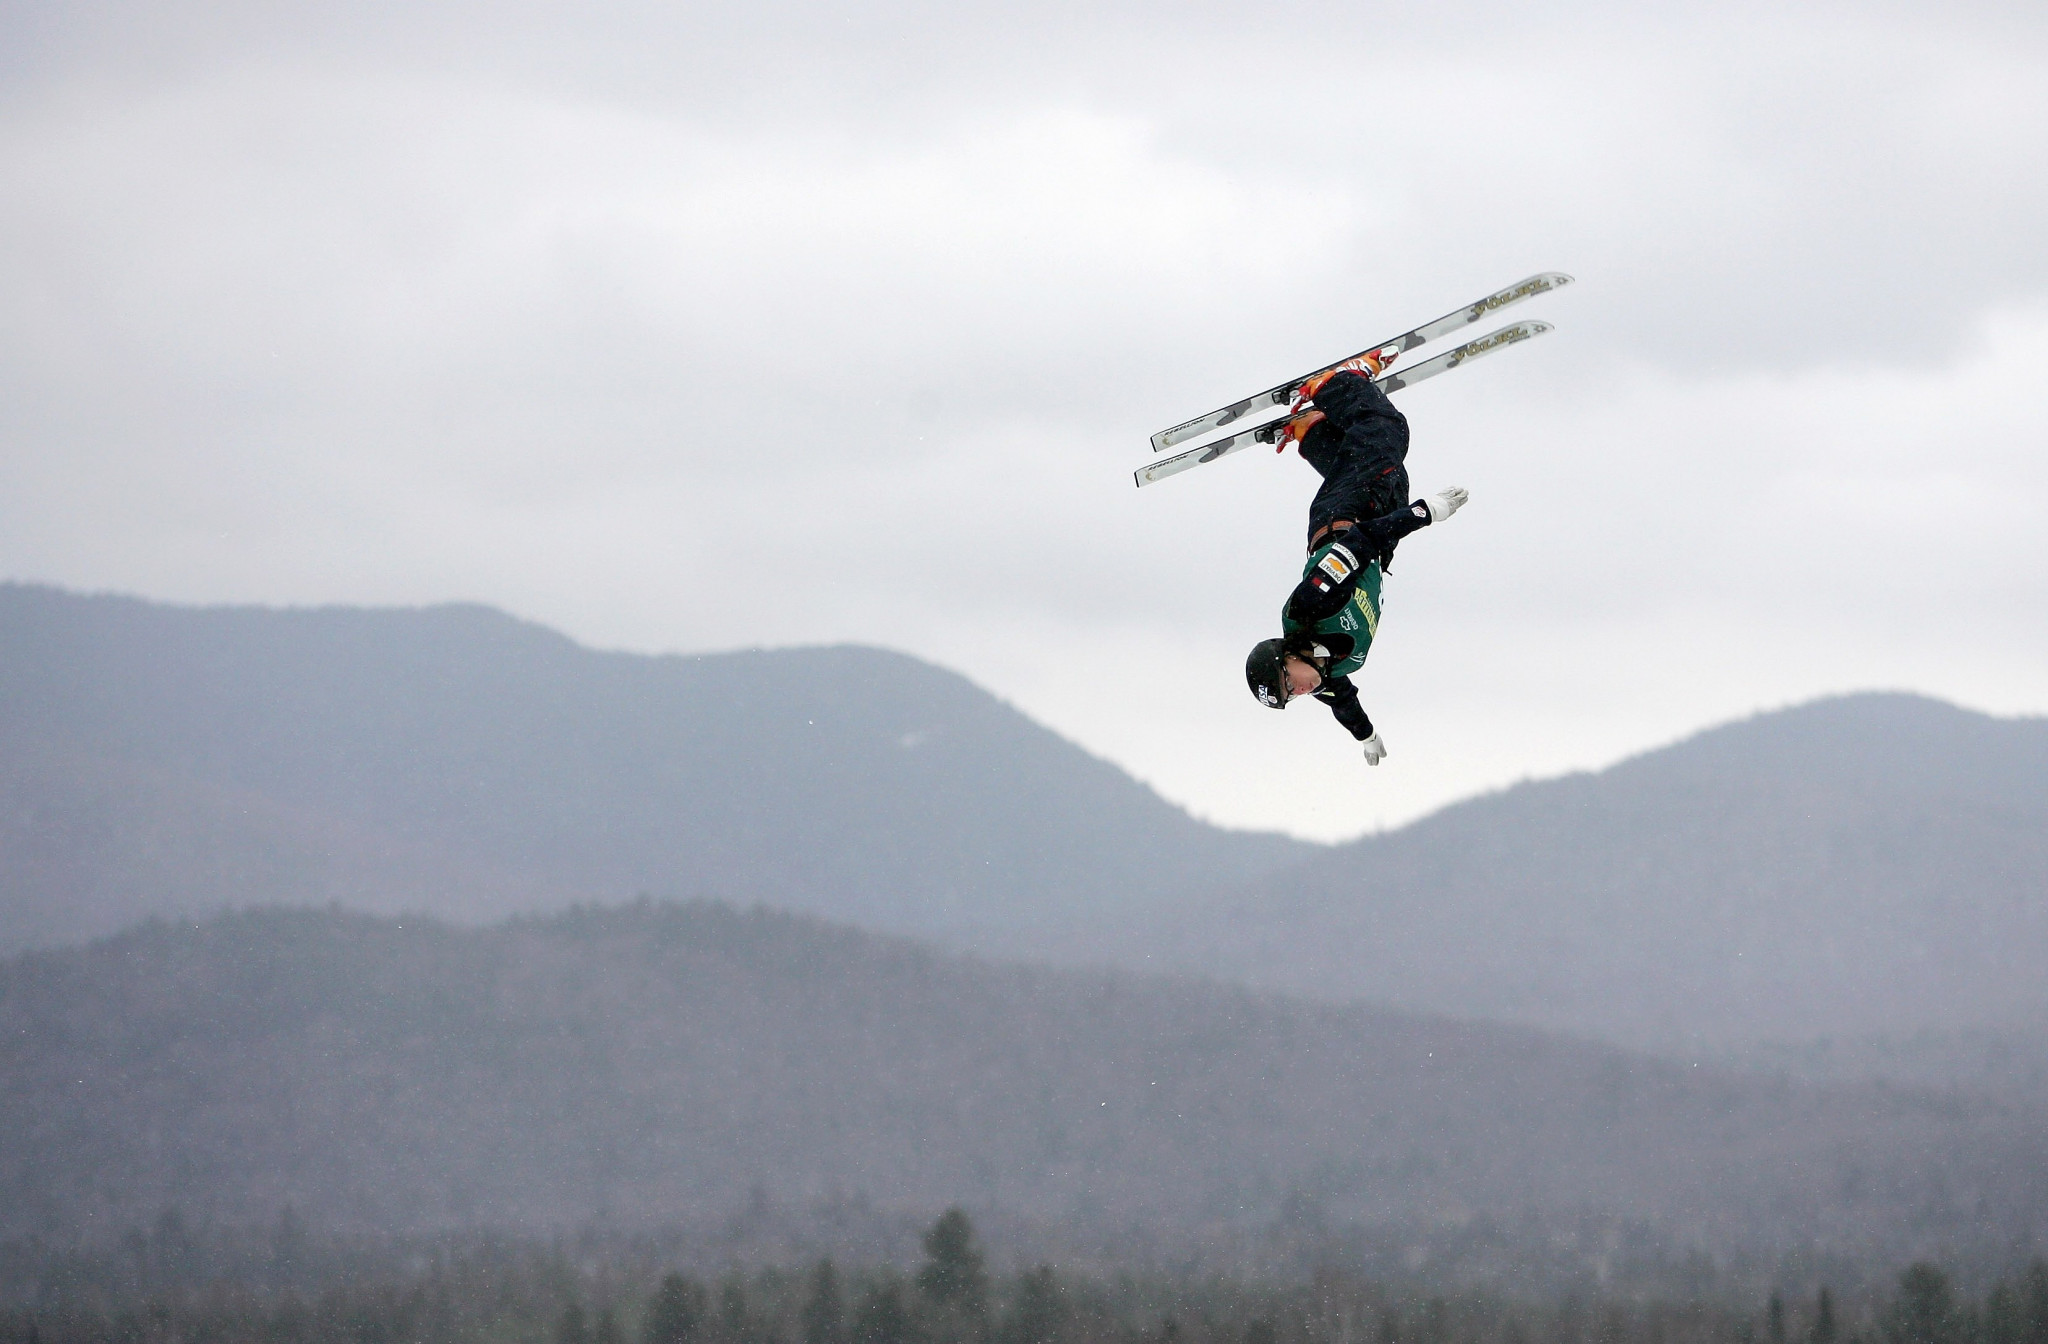 Lake Placid 2023 organisers request 1,500 volunteers for Winter World University Games